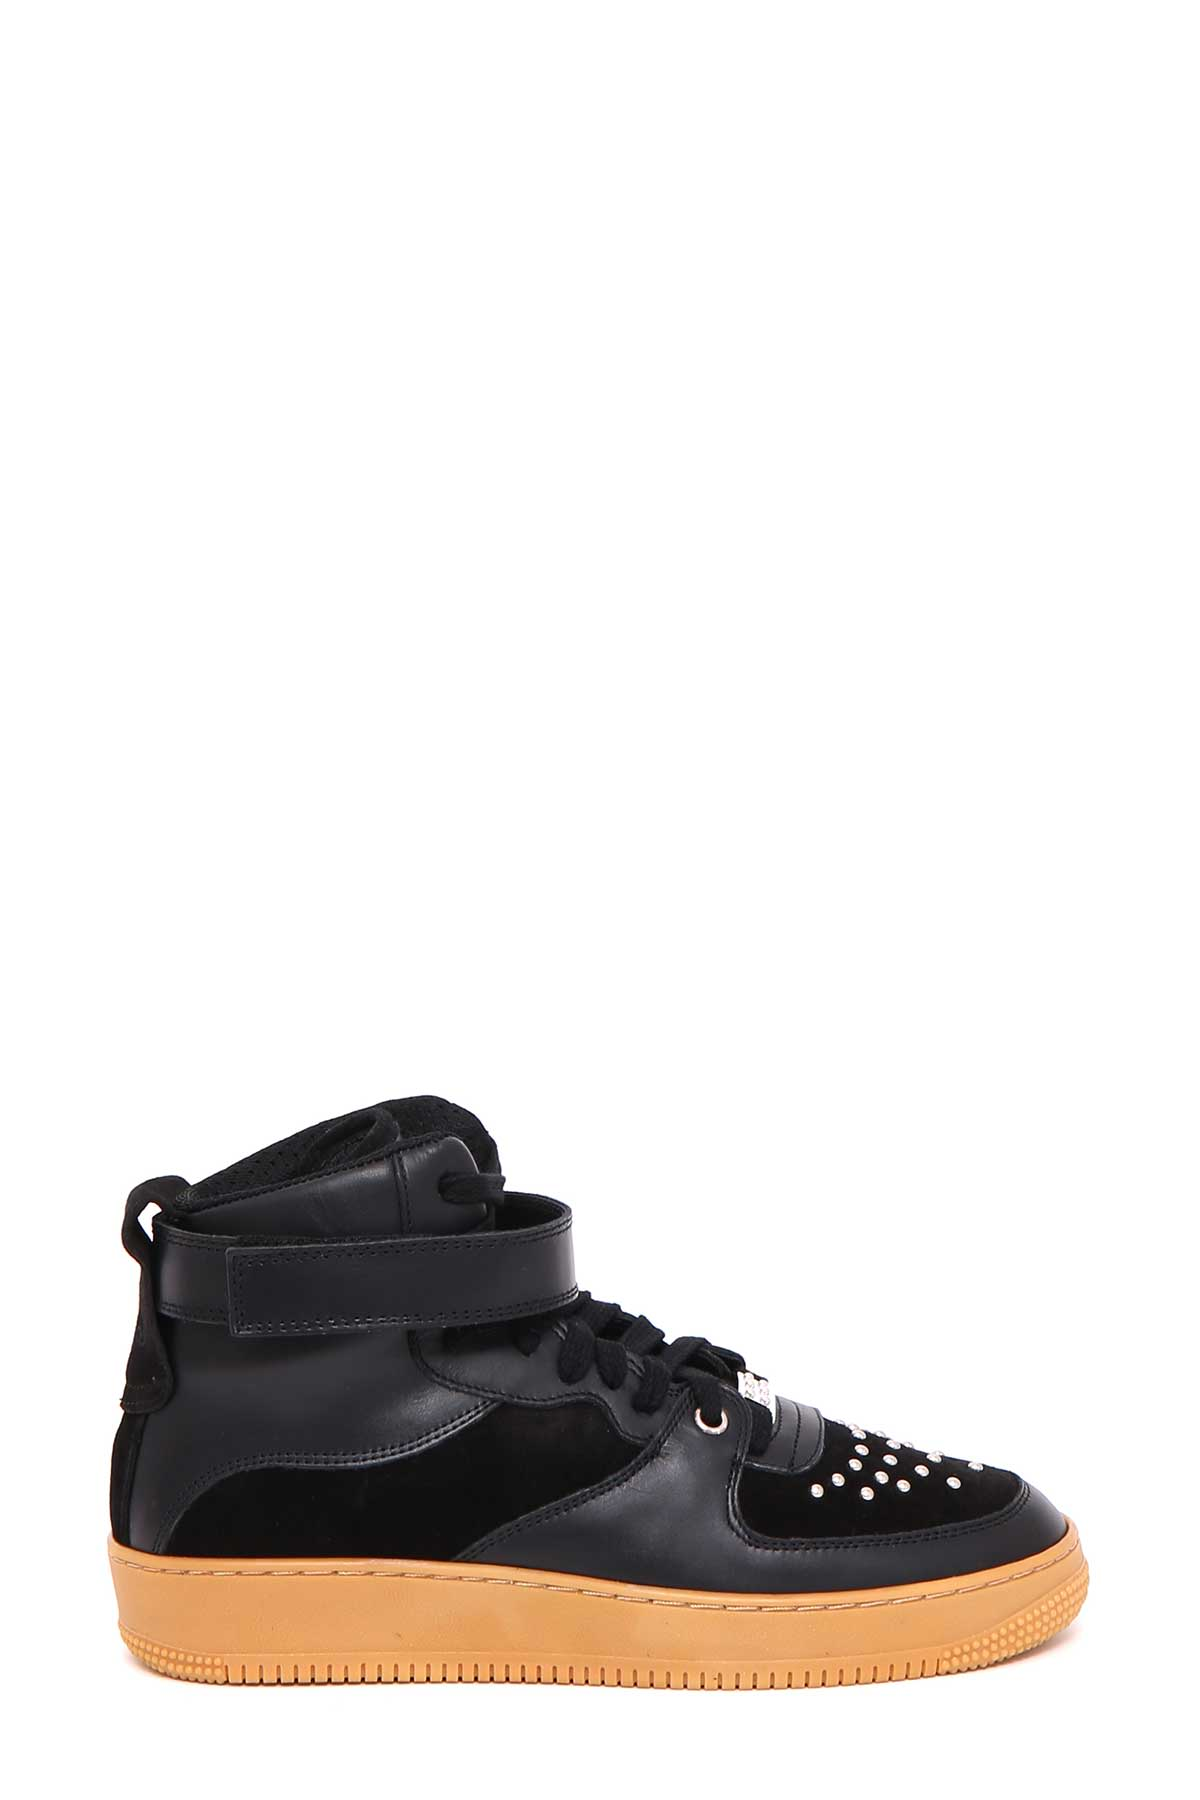 Red Valentino glam Slam High-top Sneaker